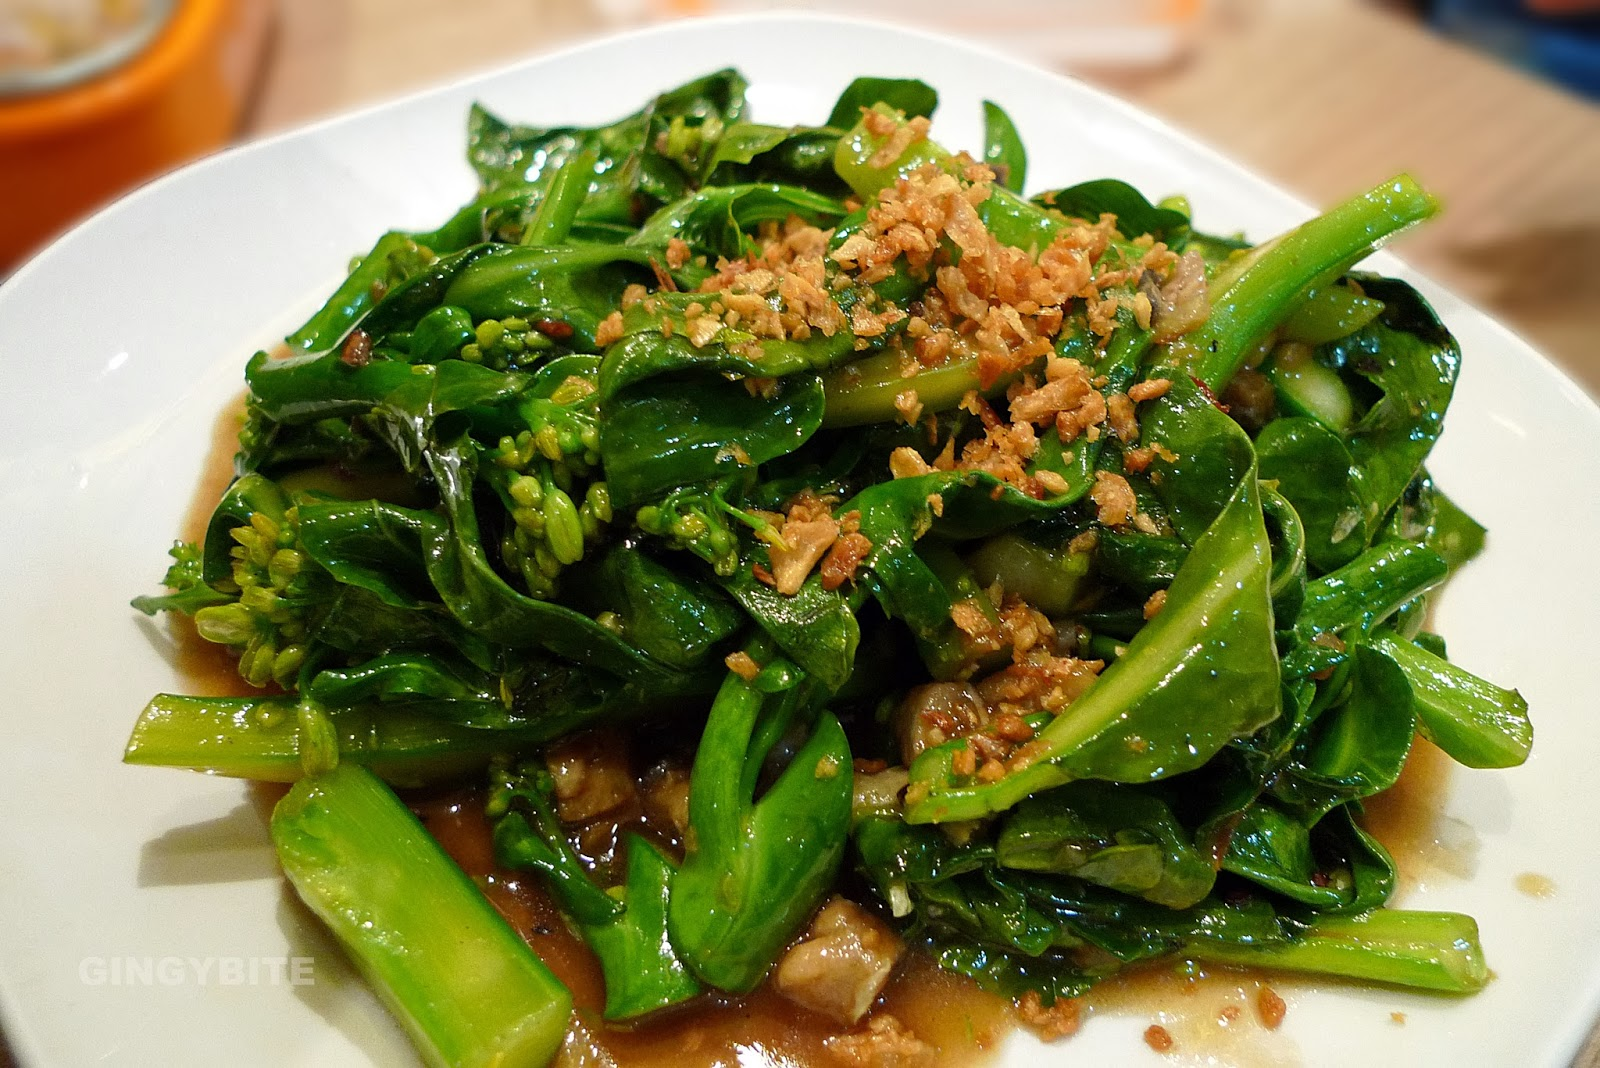 Stir-fried kai lan with salted fish